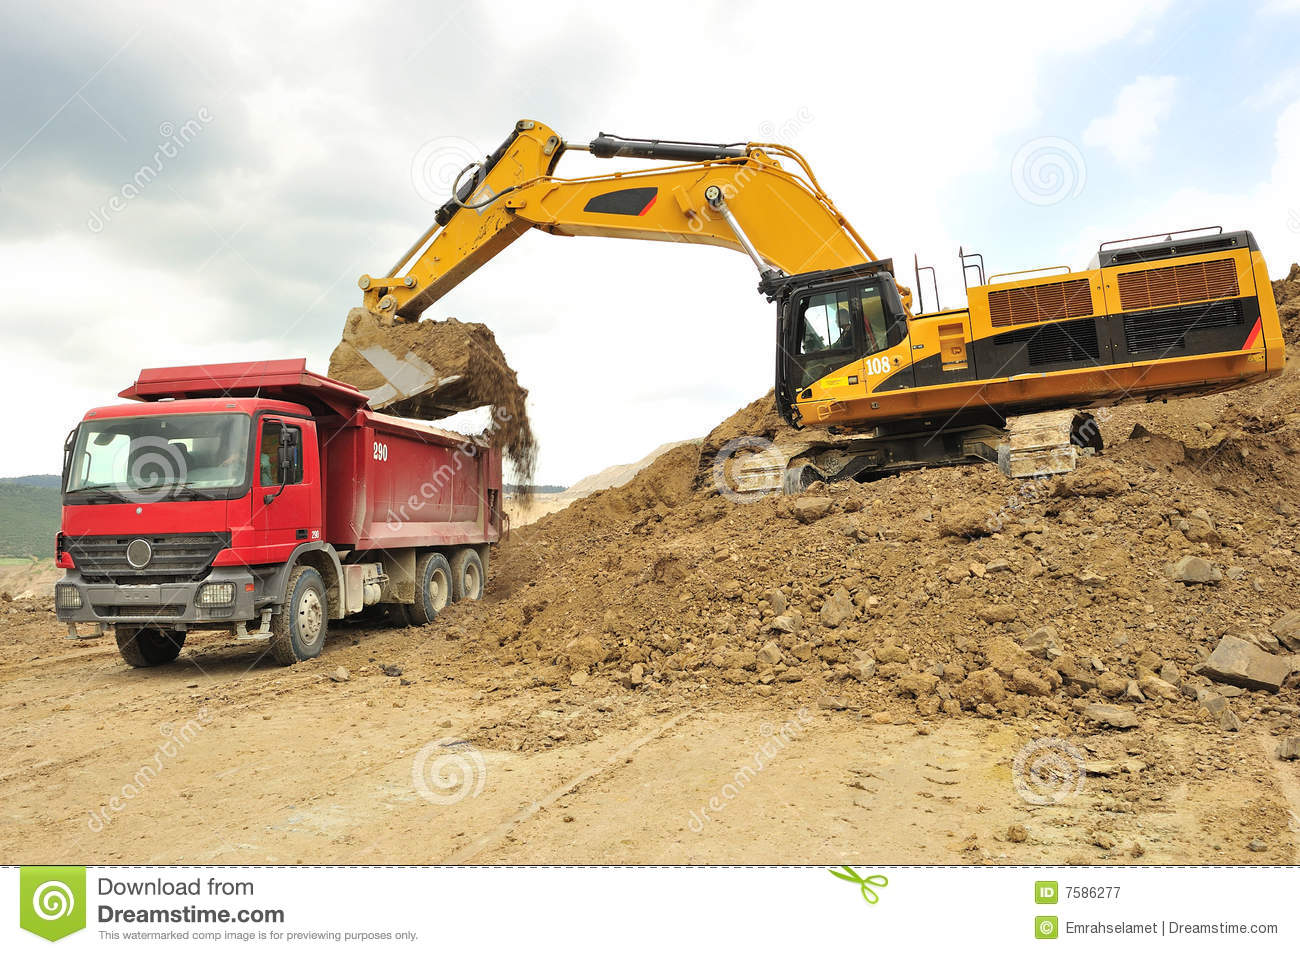 6 Wfco 8955 Wiring Diagram together with Jvc Car Stereo Wiring Diagram Pin Kd S16 also Royalty Free Stock Photography Backhoe Loader Loading Truck Image7586277 together with Vehicle Turning Radius Chart also Ford B F T Series Trucks 1964 Tractor. on tractor trailer diagram